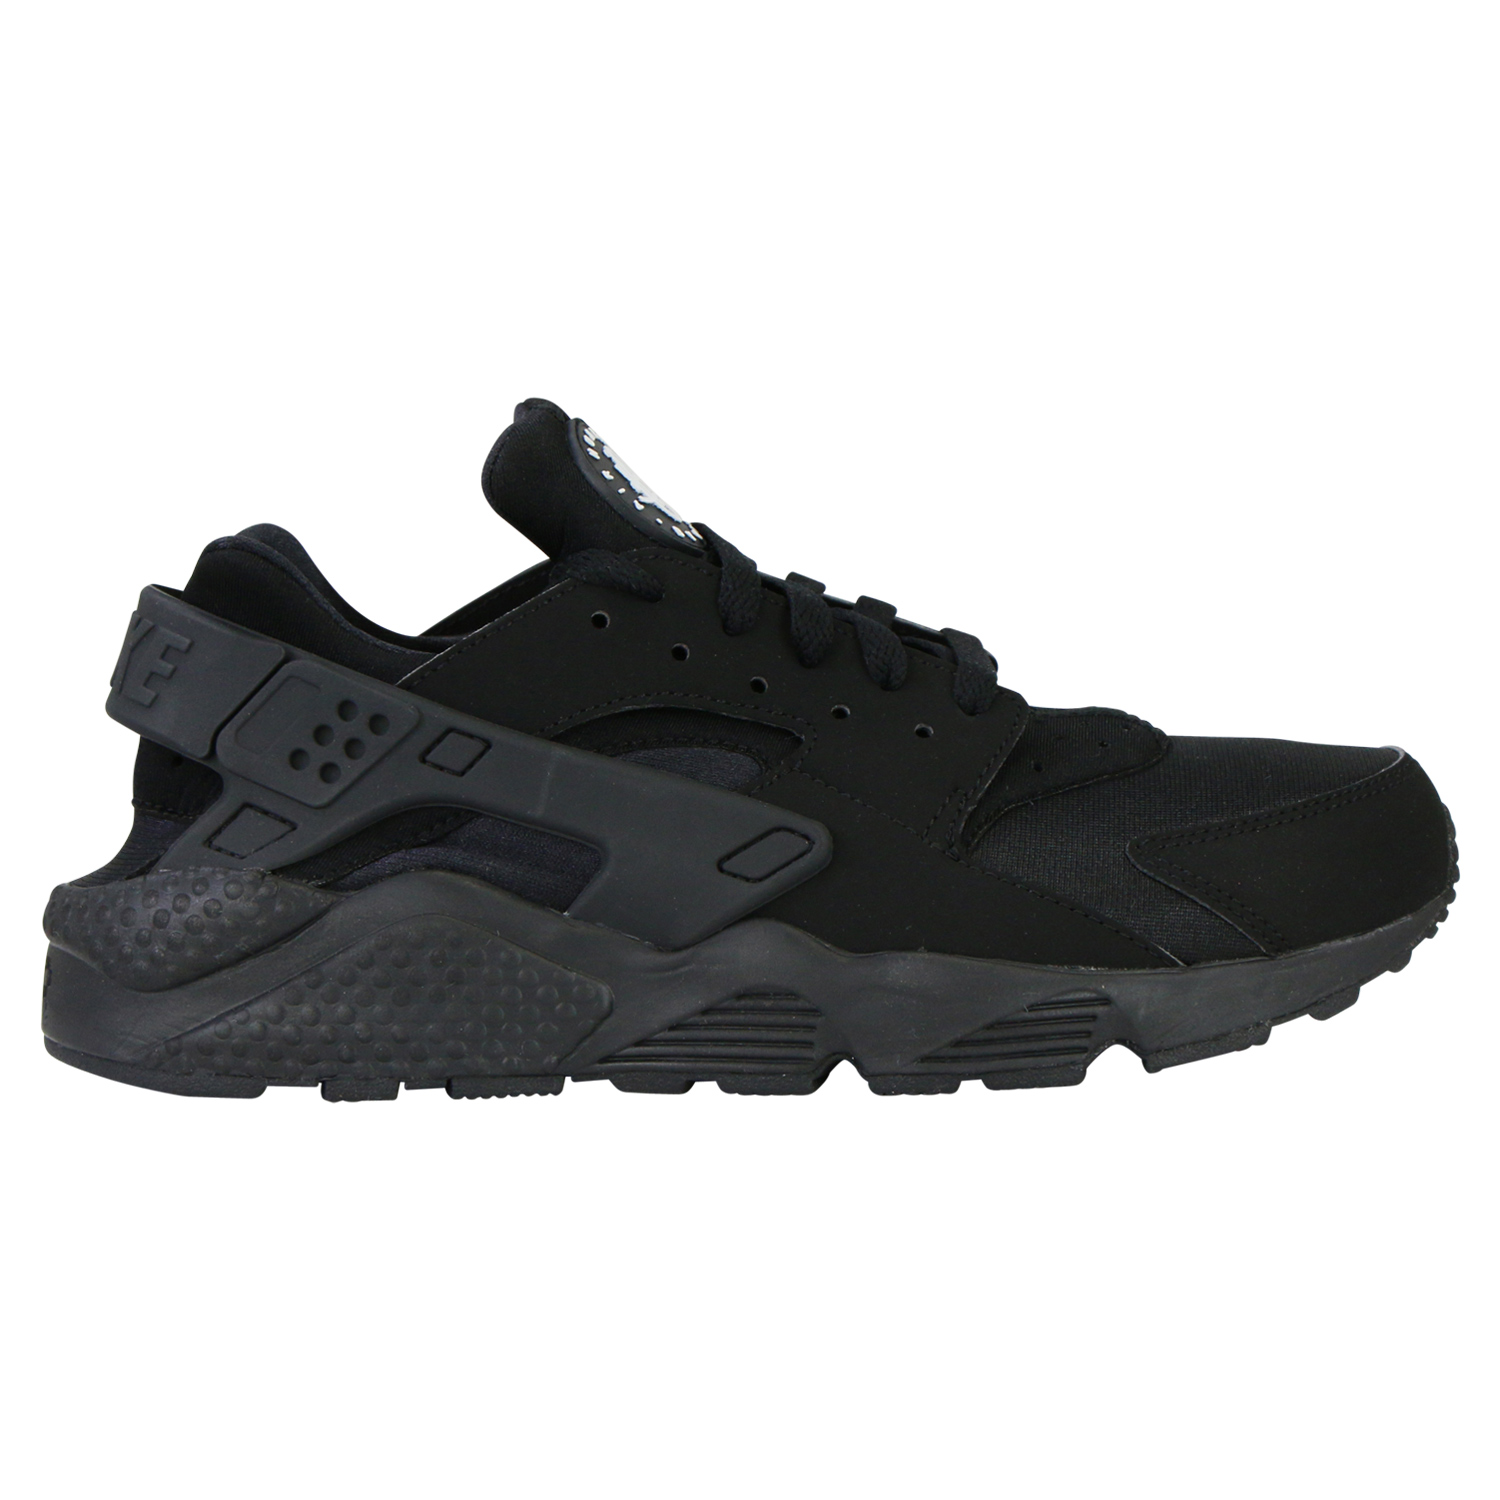 nike air huarache schuhe turnschuhe sneaker herren schwarz. Black Bedroom Furniture Sets. Home Design Ideas